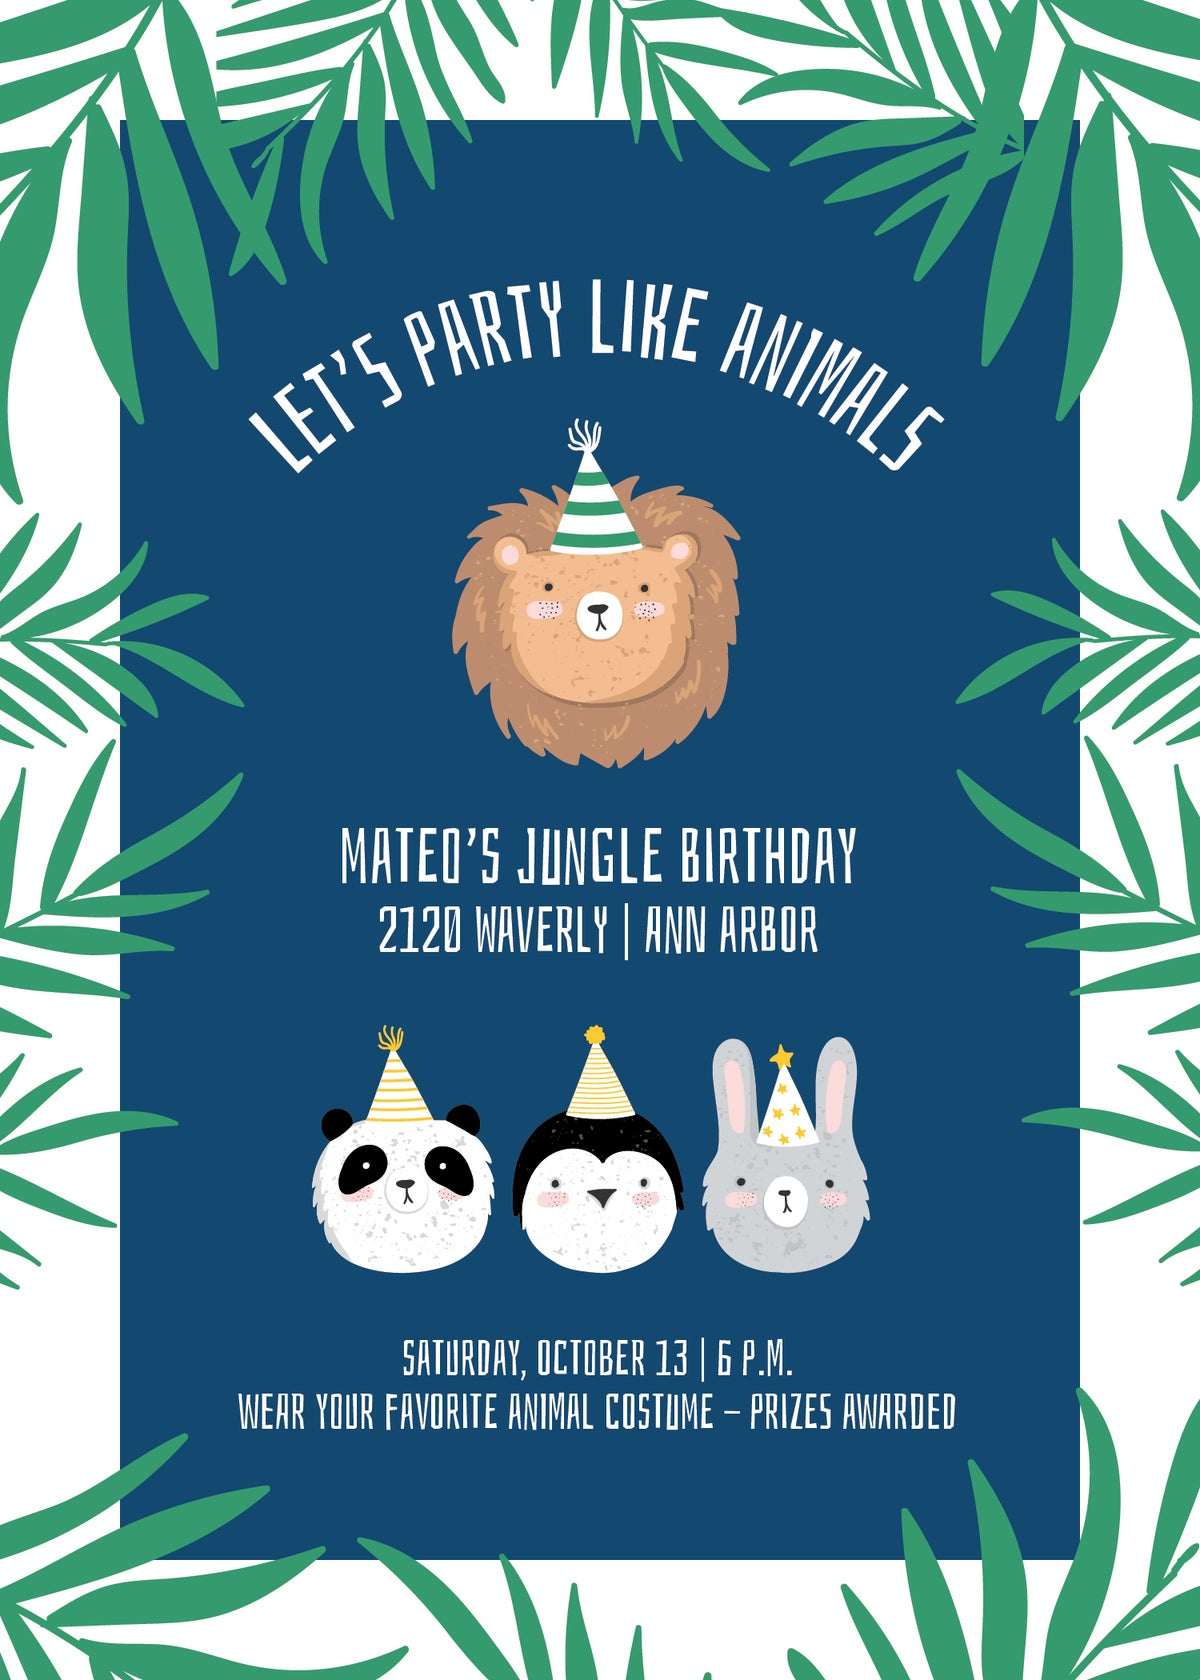 Party Like Animals